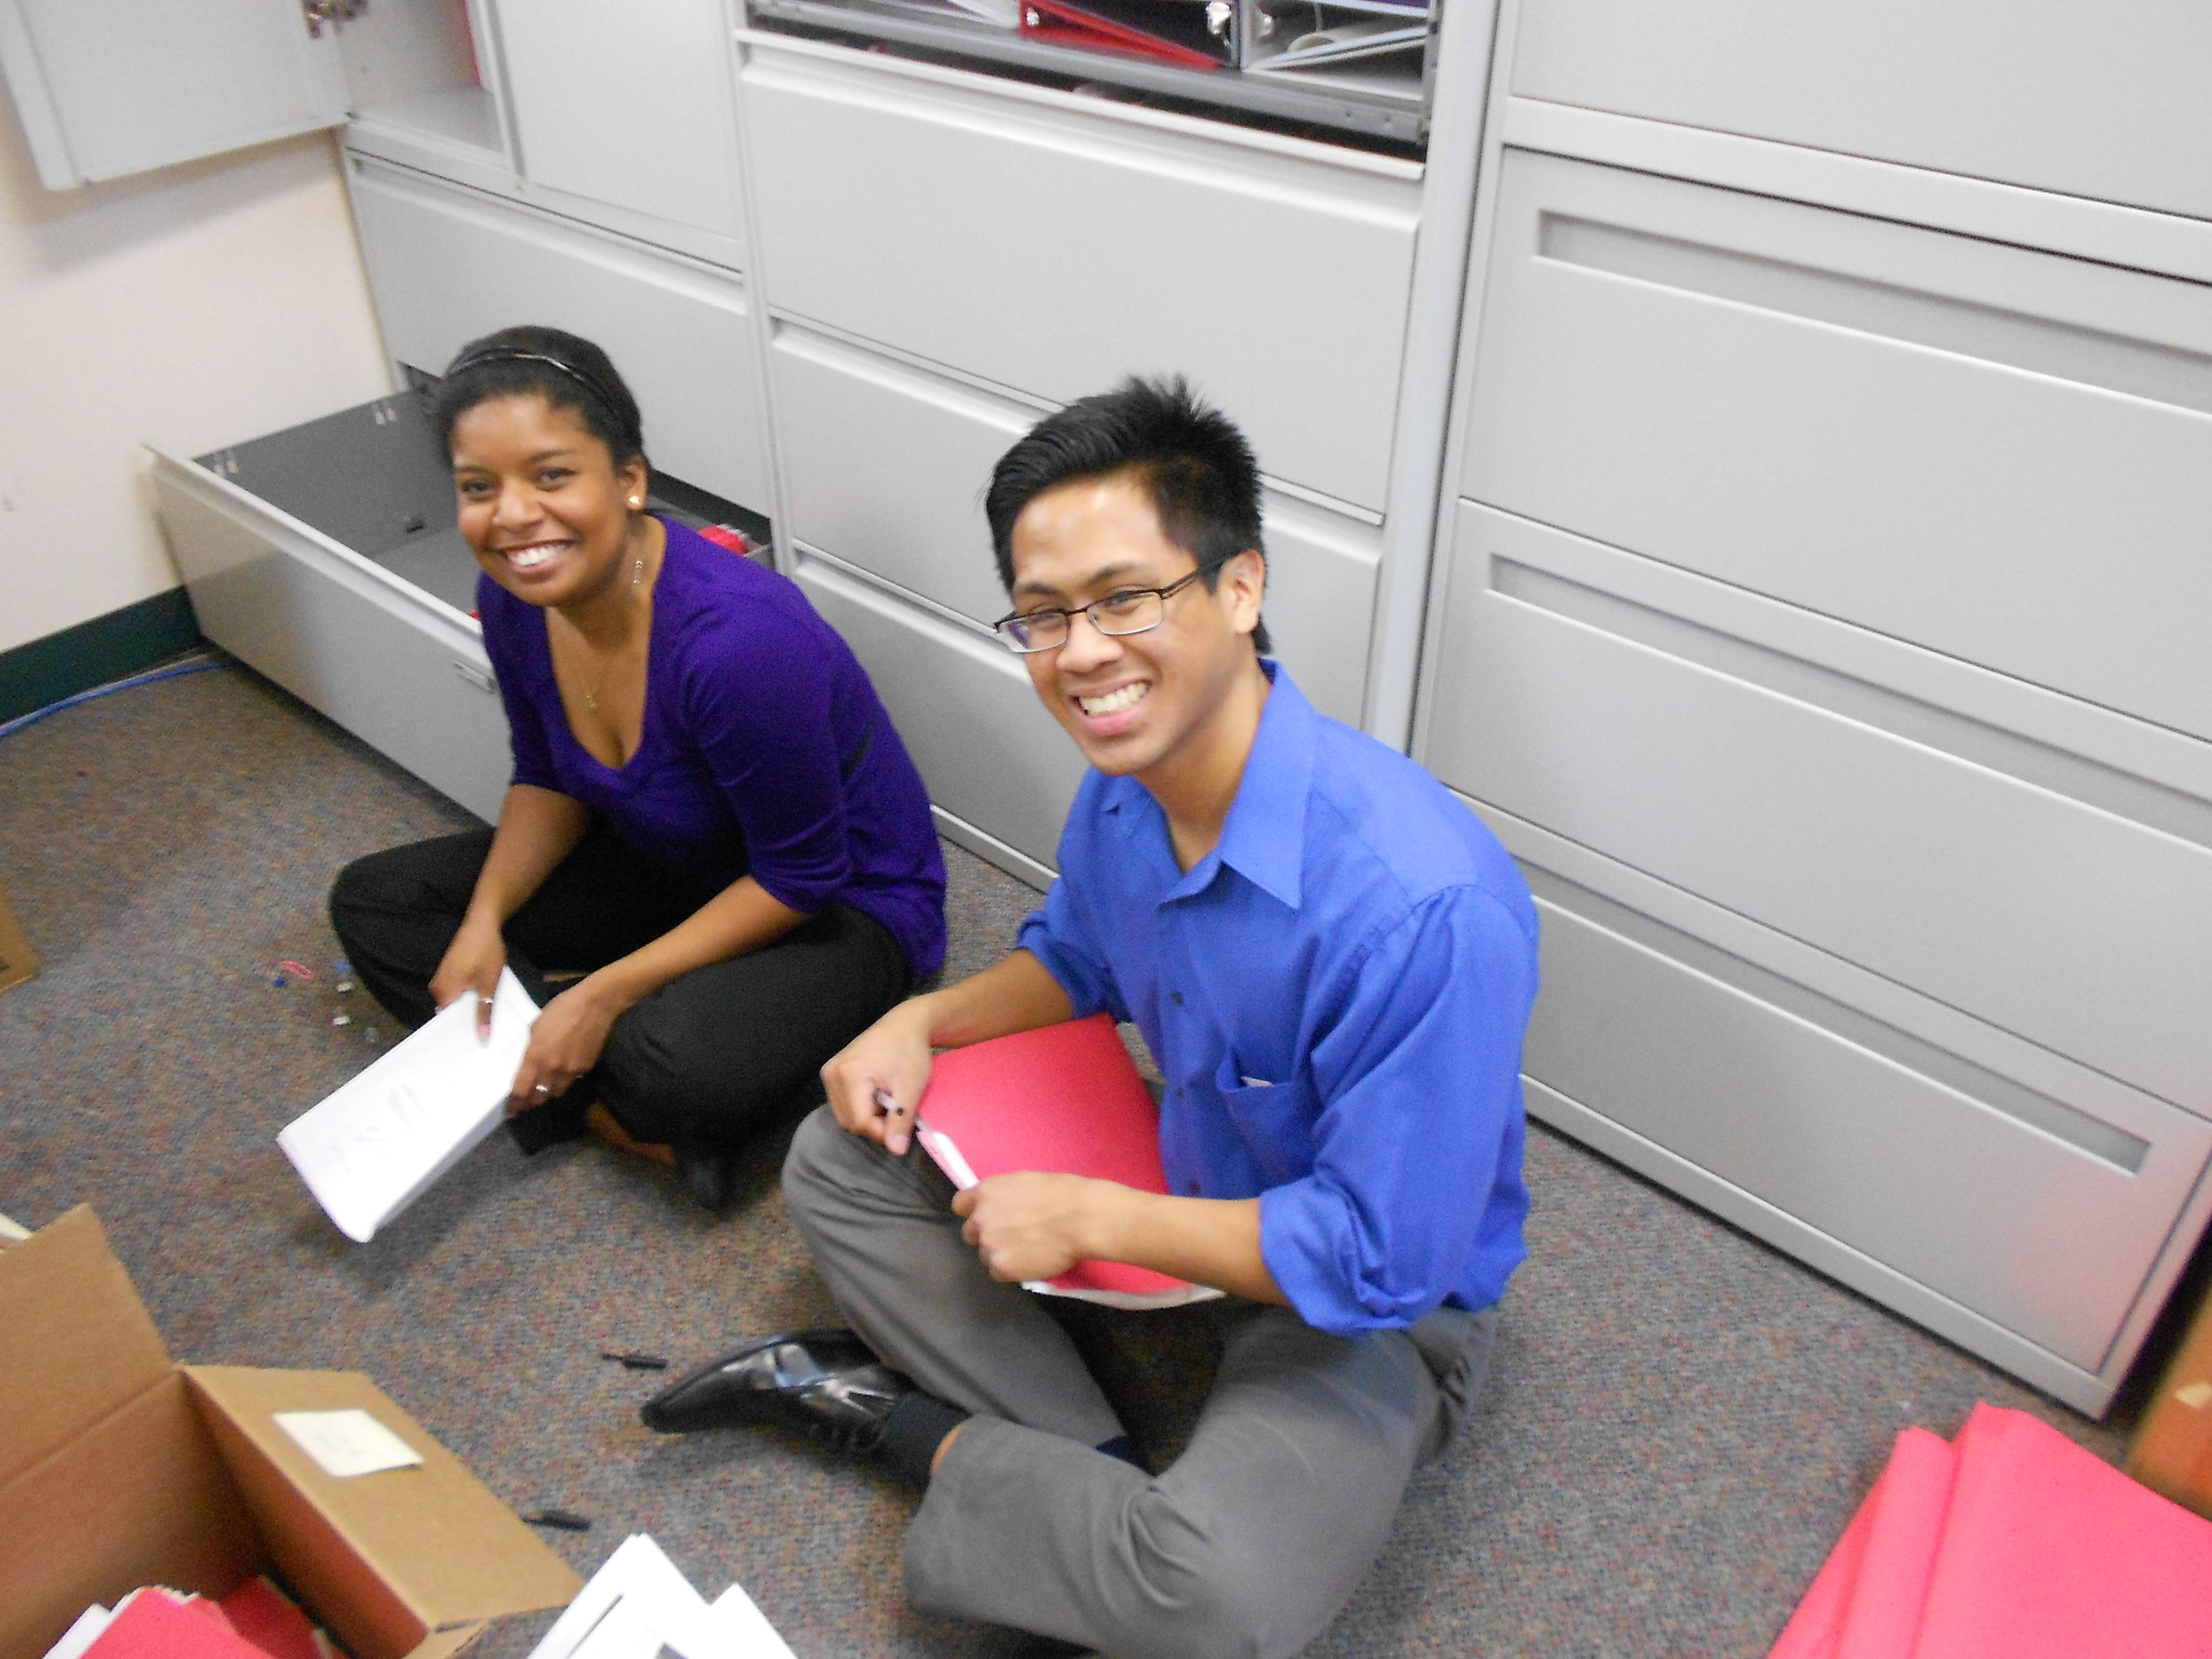 Two HSP interns Lianne Dottin (left) and Eric Domingo (right) busy at work during their internships last summer.